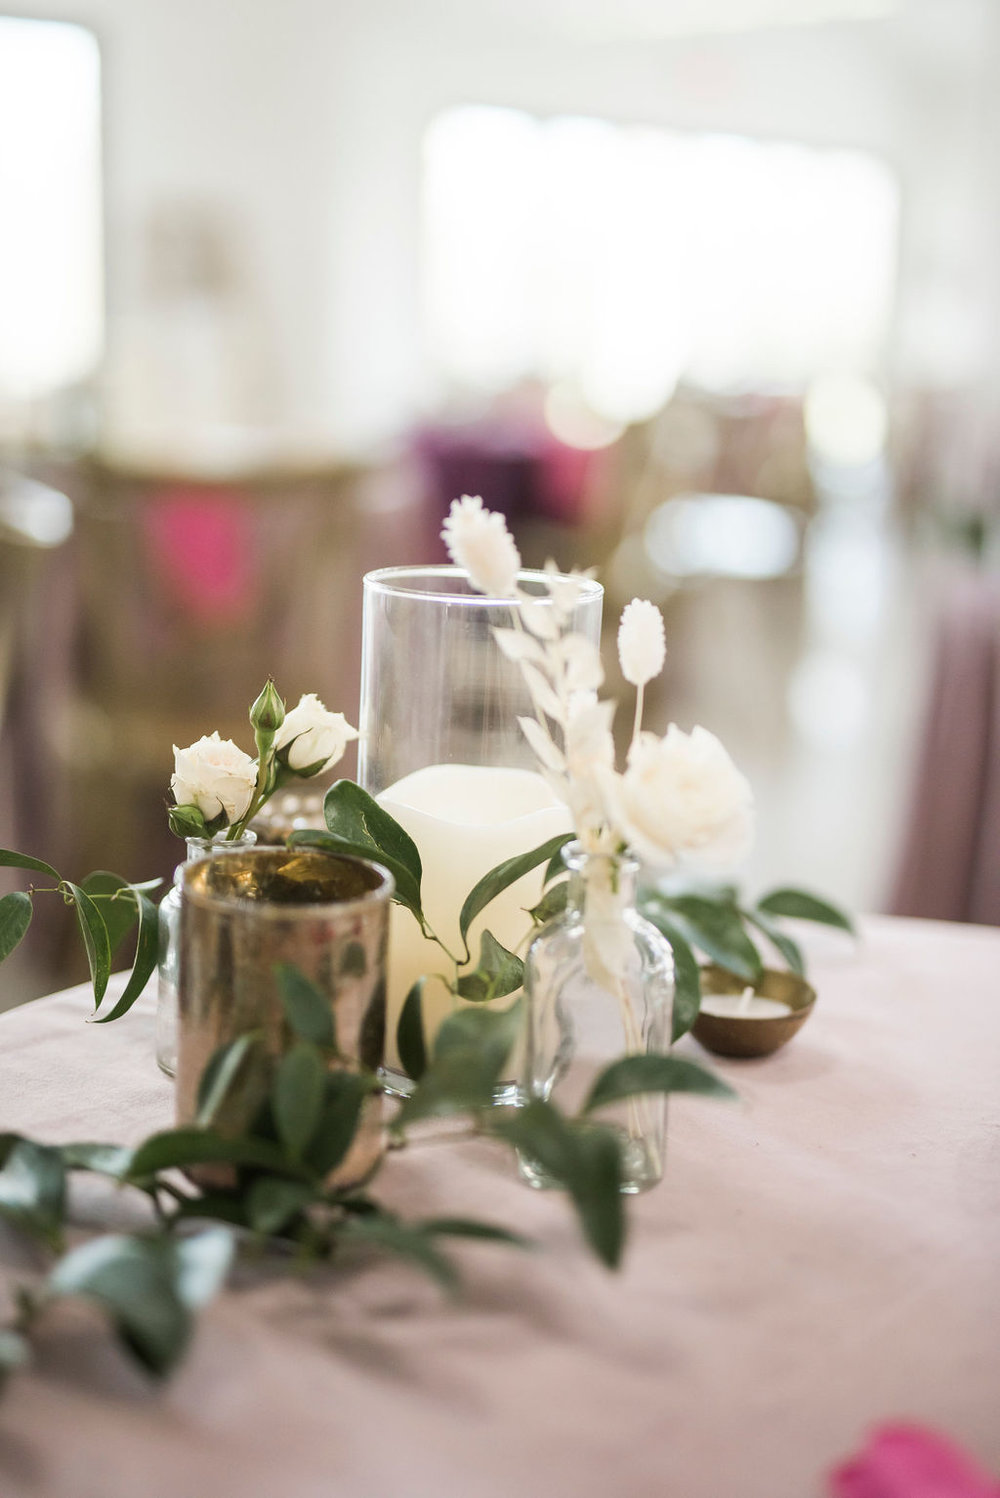 MINIMAL CANDLE WHITE FLORAL SMILAX CENTERPIECE WEDDING INSPIRATION COLLEGE STATION COORDINATOR EPOCH CO